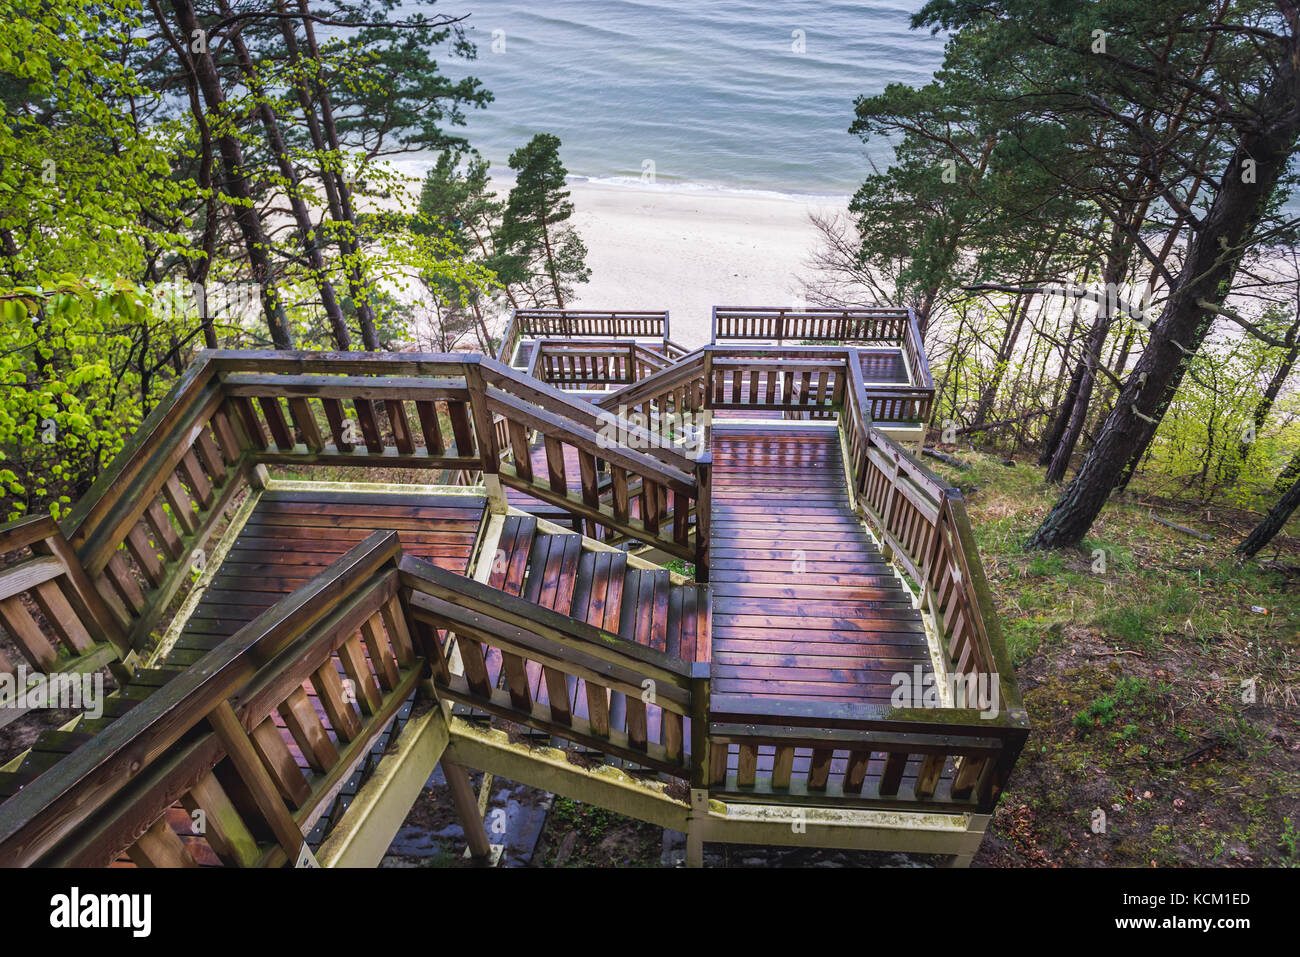 View from the top of wooden stairs on Baltic Sea beach in Miedzyzdroje seaside resort on Wolin Island in West Pomeranian - Stock Image